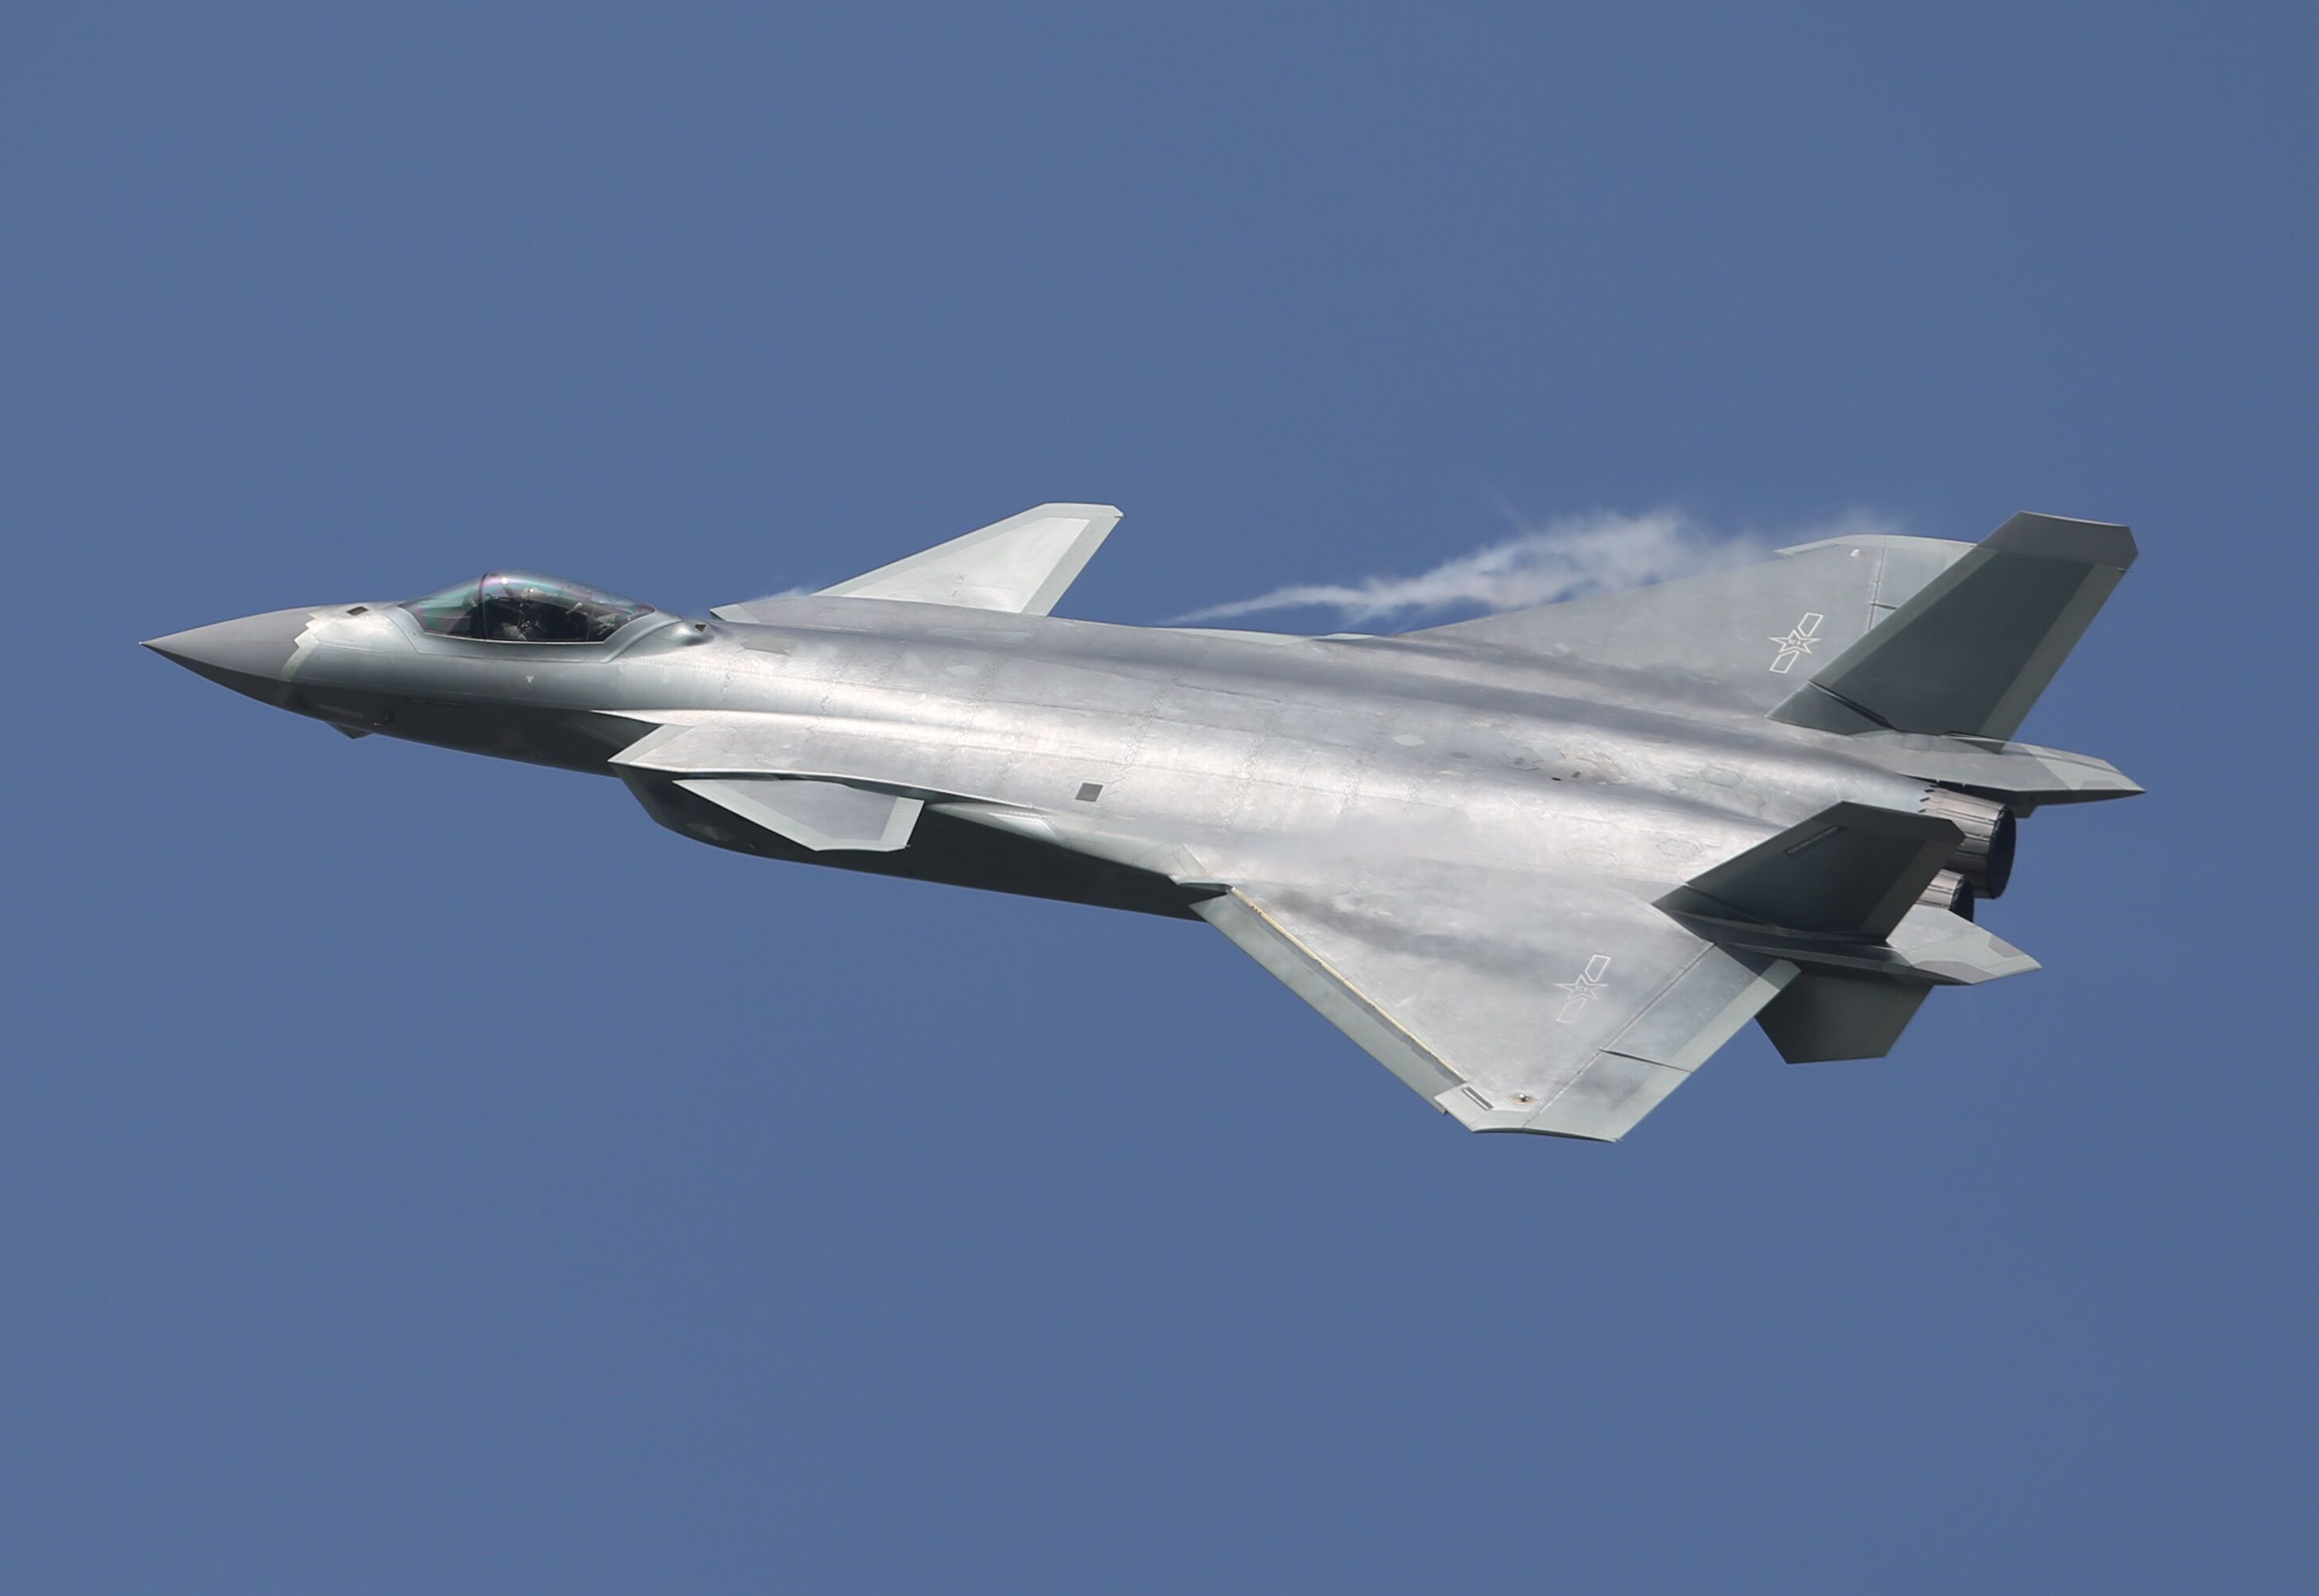 The J-20 fighter aircraft, produced by Chengdu Aerospace Corporation, flies during the 11th China International Aviation & Aerospace Exhibition at Zhuhai Airshow Center on November 1, 2016 in Zhuhai, China.